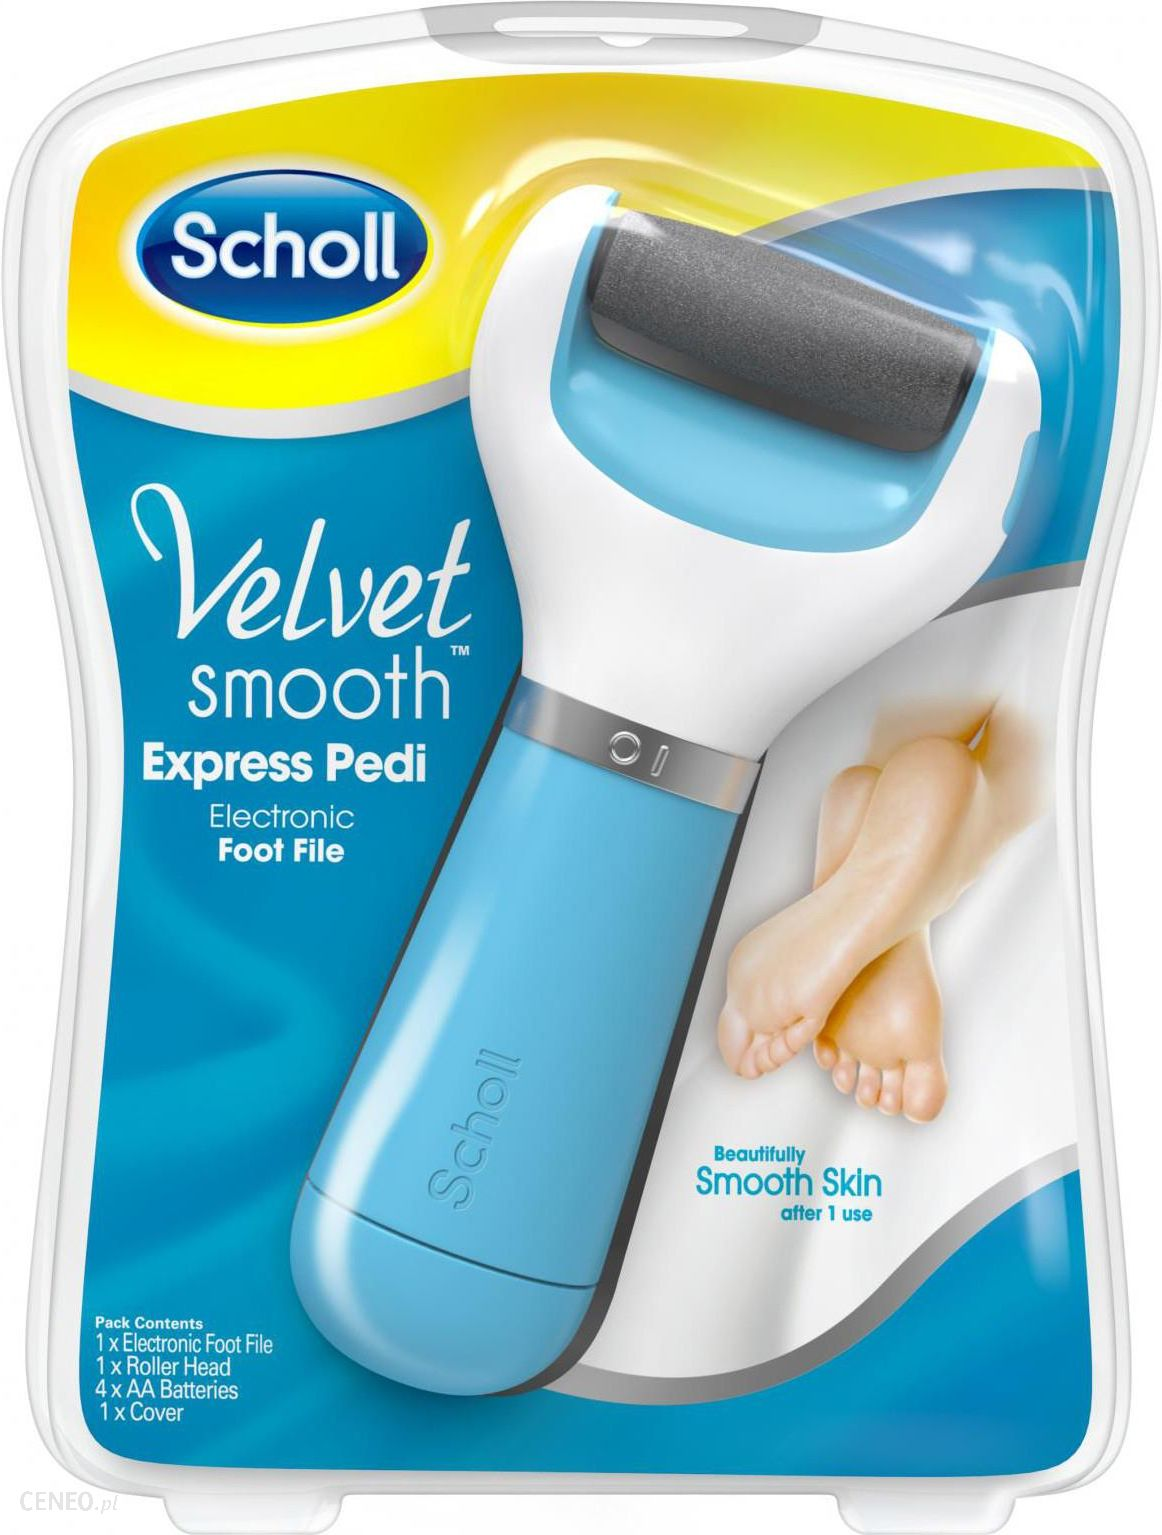 scholl velvet smooth nail care system tesco